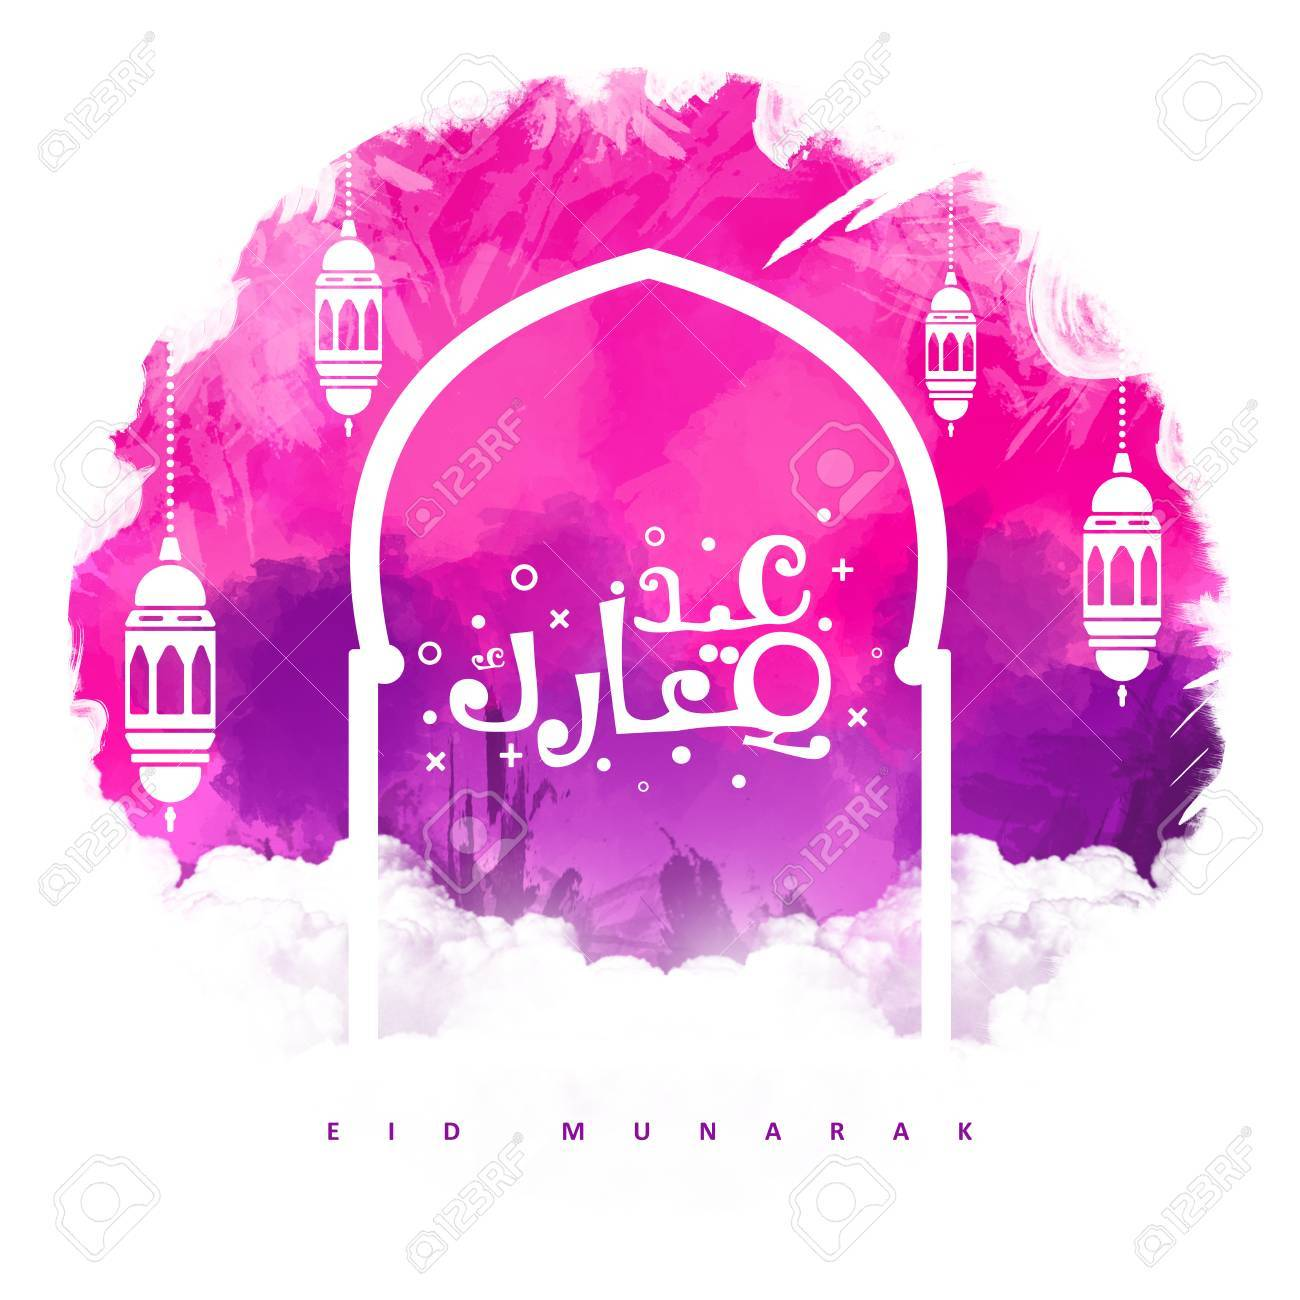 Arabic calligraphy of an eid greeting happy eid al adha eid arabic calligraphy of an eid greeting happy eid al adha eid al fitr kristyandbryce Choice Image